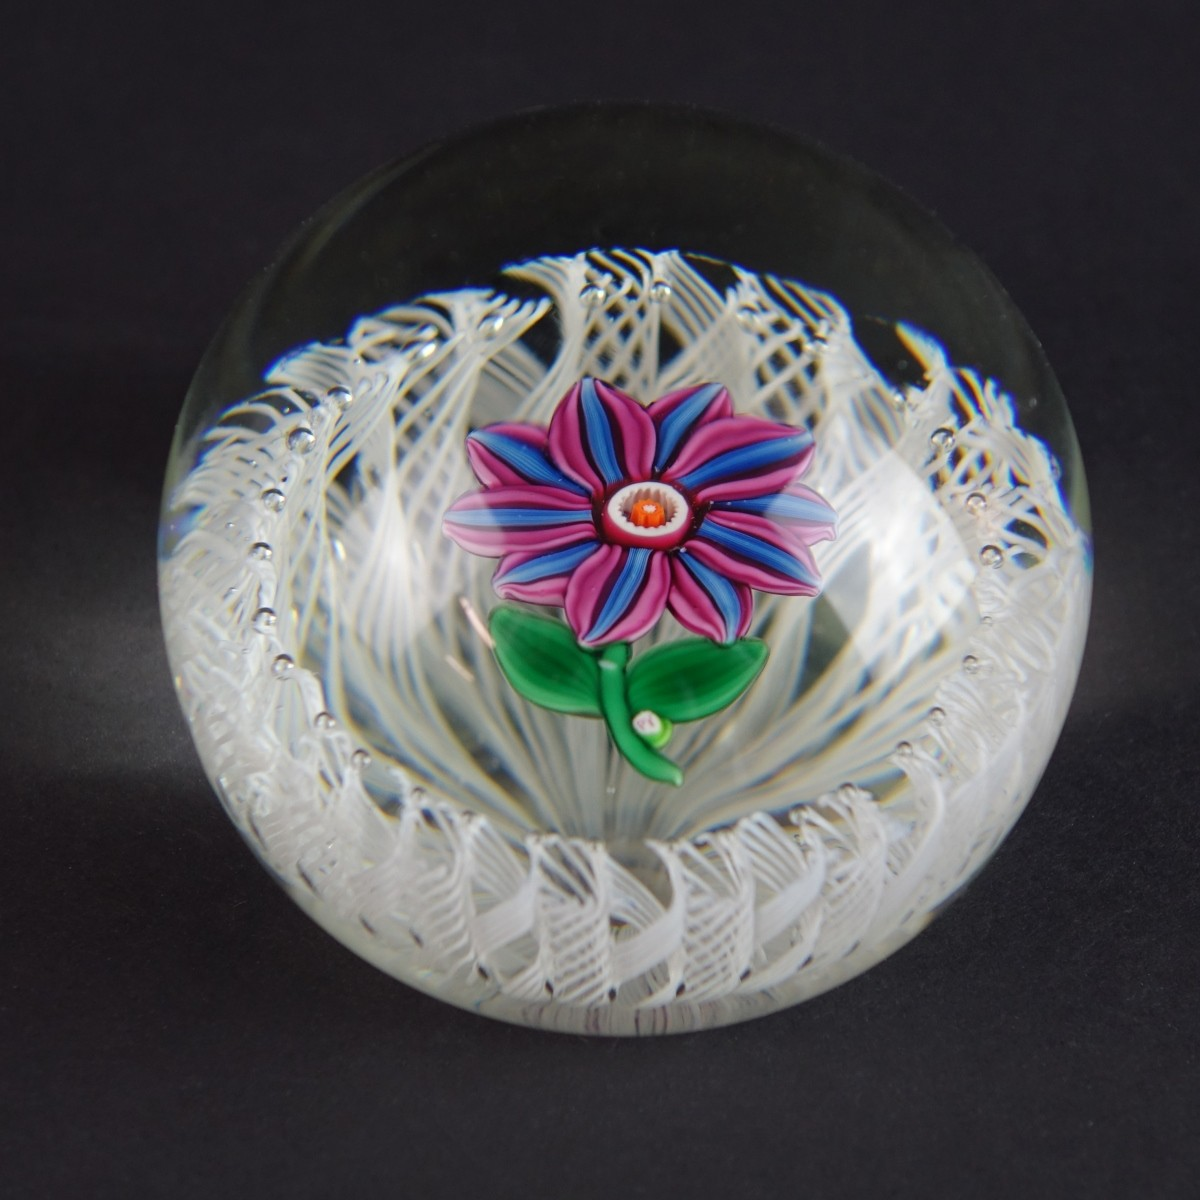 Paul Ysart Art Glass Paperweight